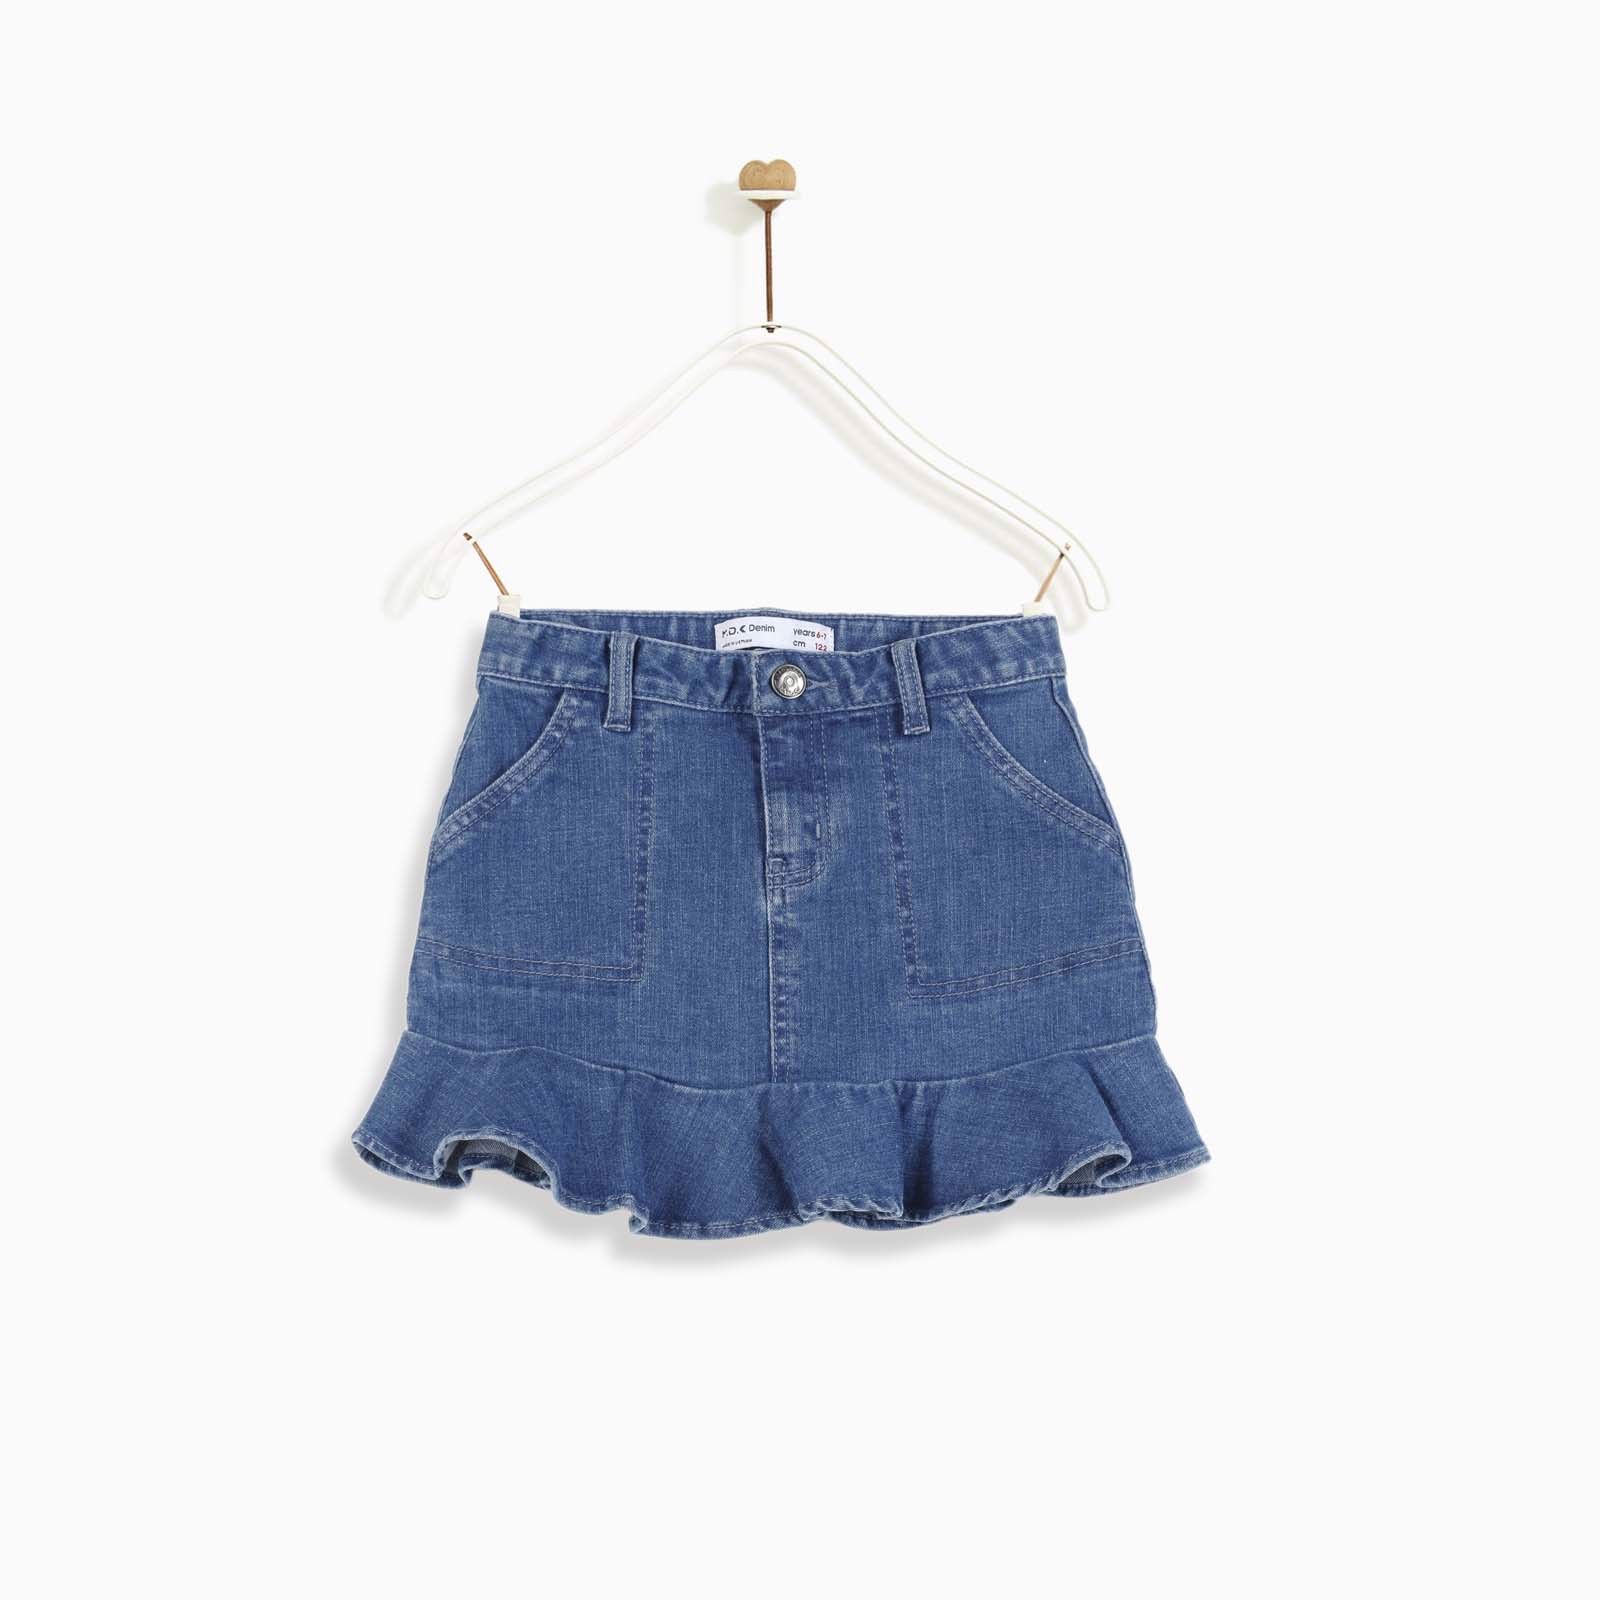 Chân váy Pull-on denim ruffle